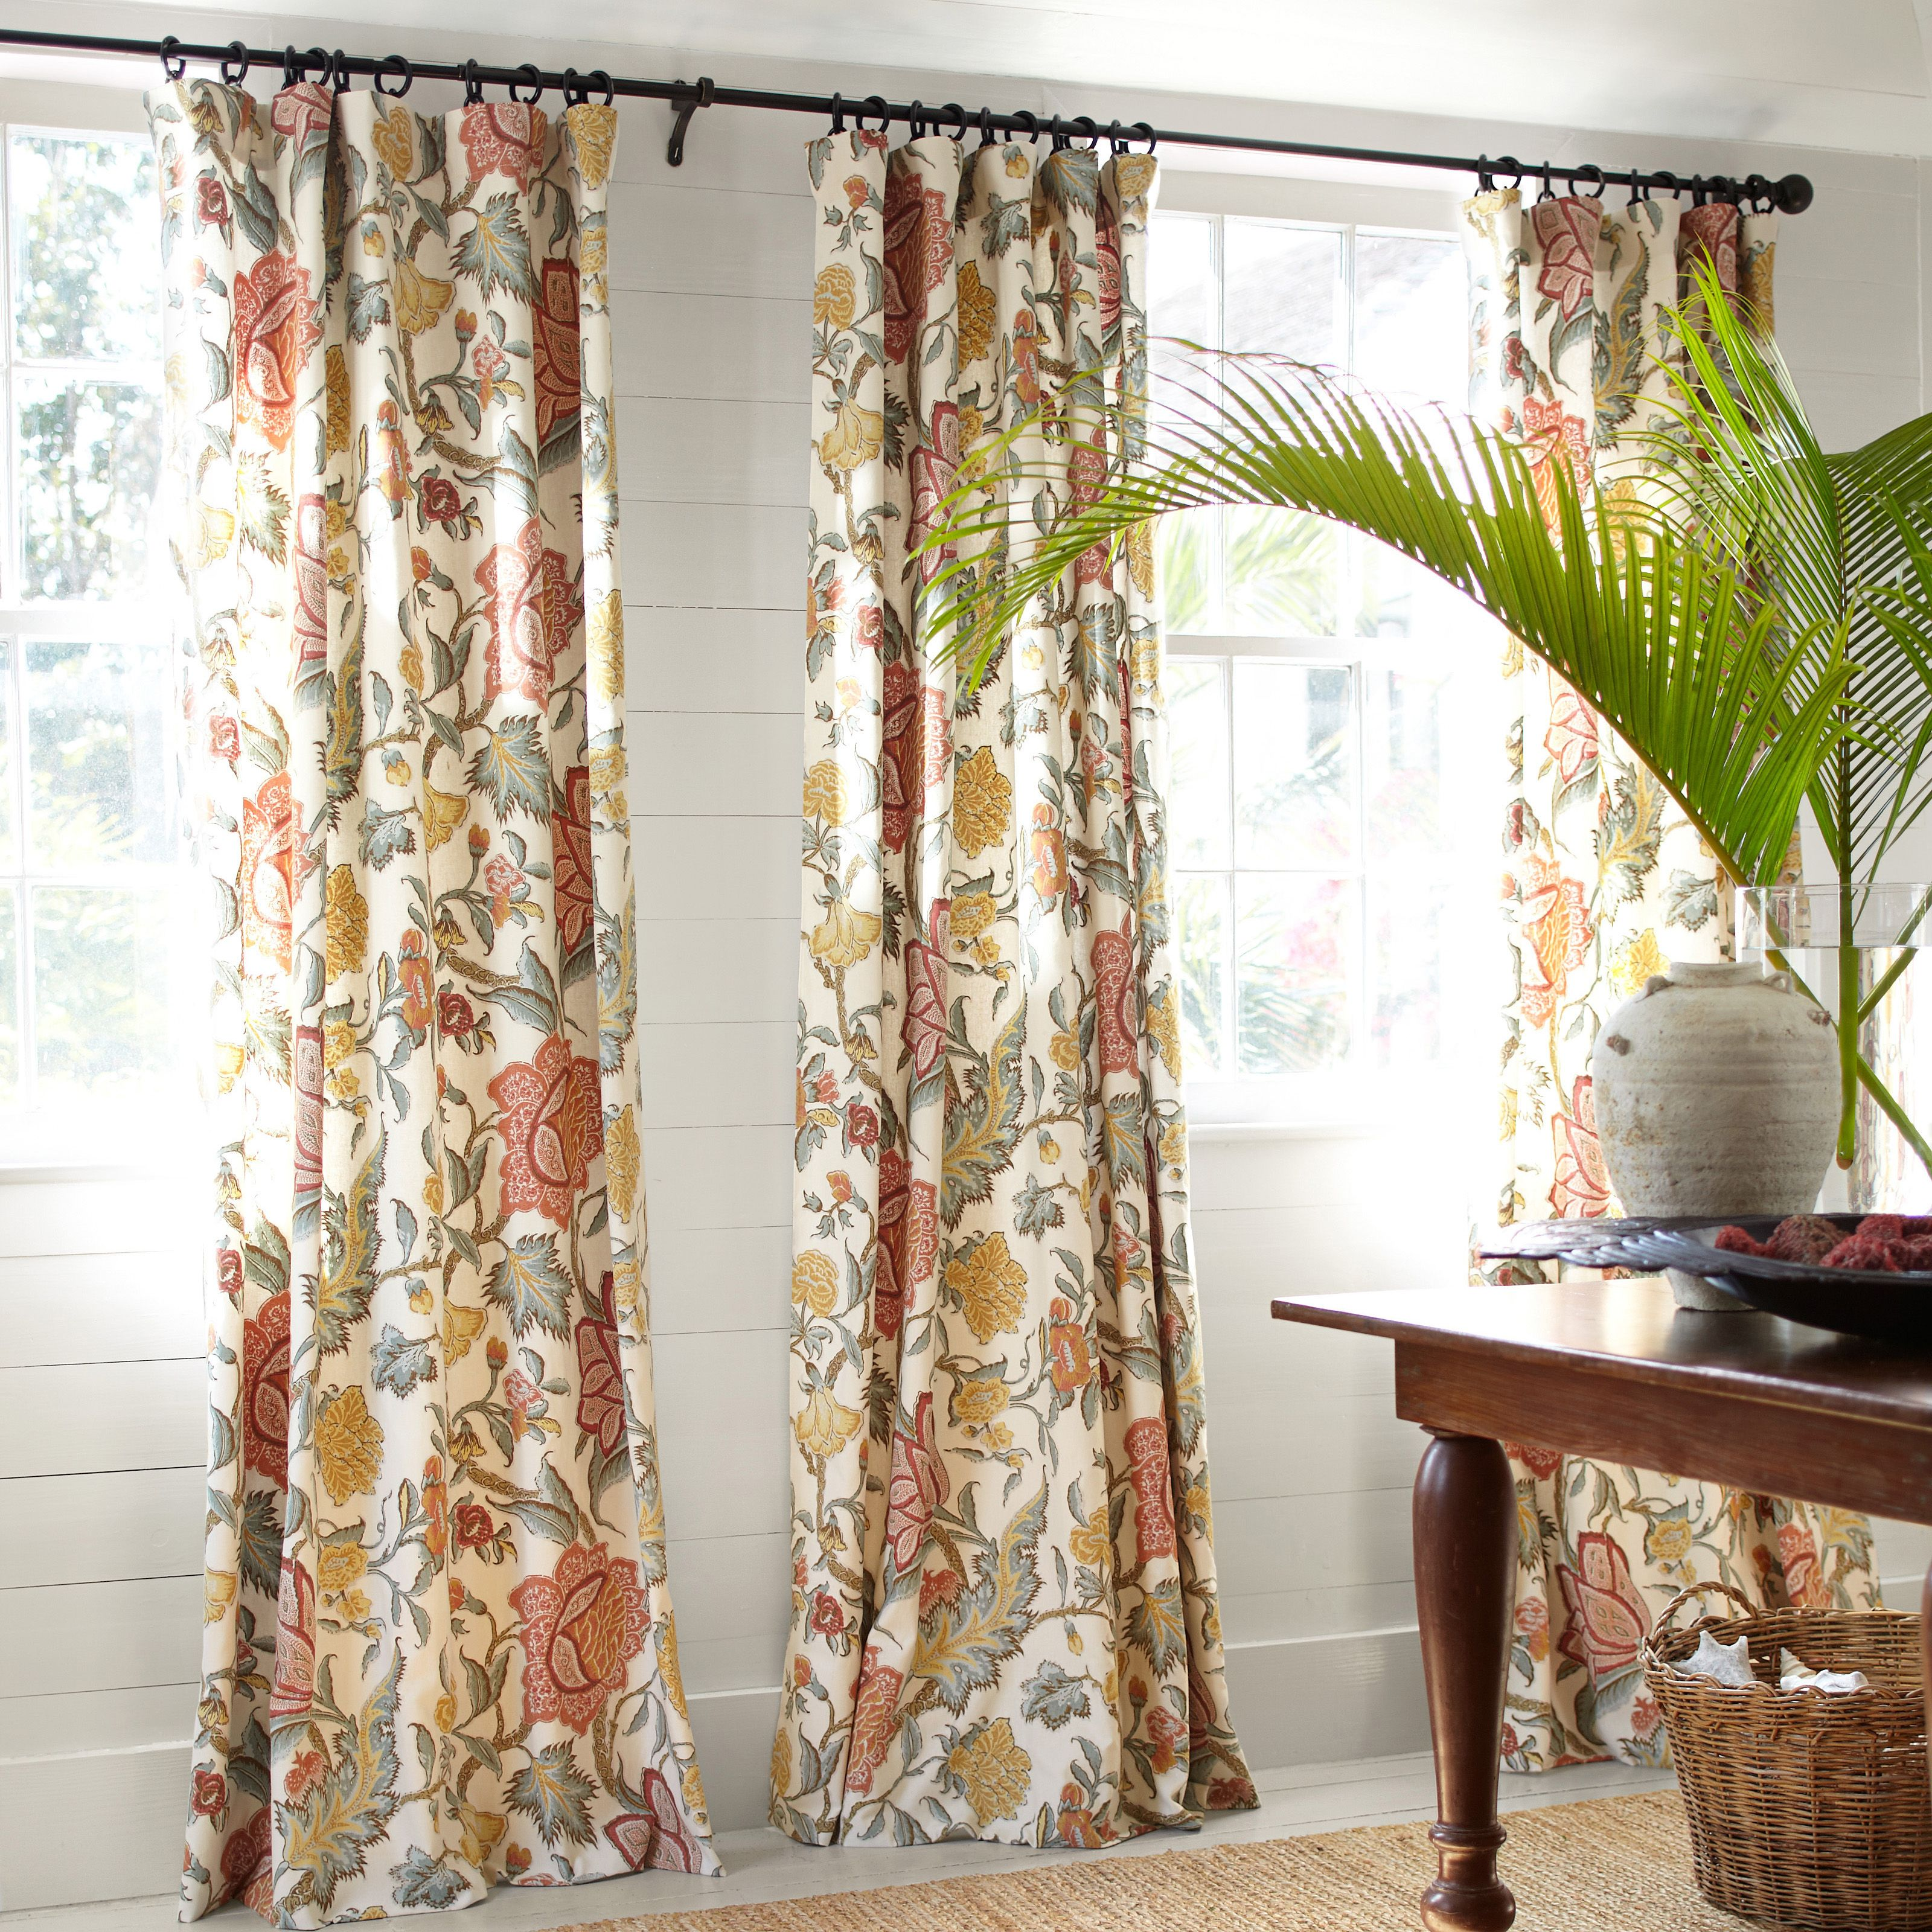 rods tie of bathroom for barn drapery best curtains elegant drapes sheer pottery accessories linen pics top with barns